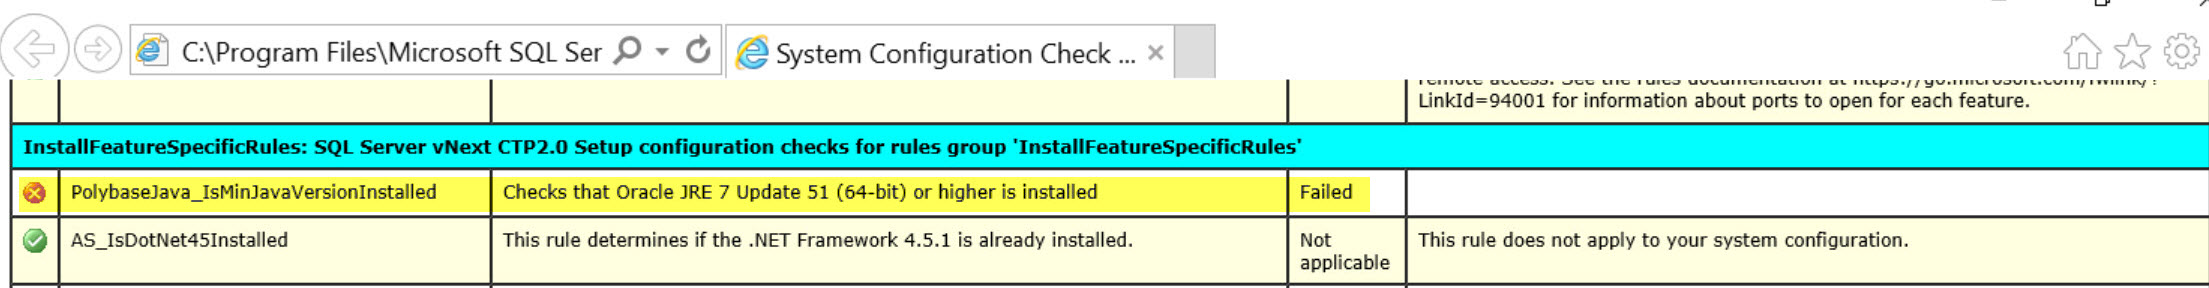 SQL SERVER 2019 - Oracle JRE 7 Update 51 (64 Bit) or Higher is Required sql19-jre-02